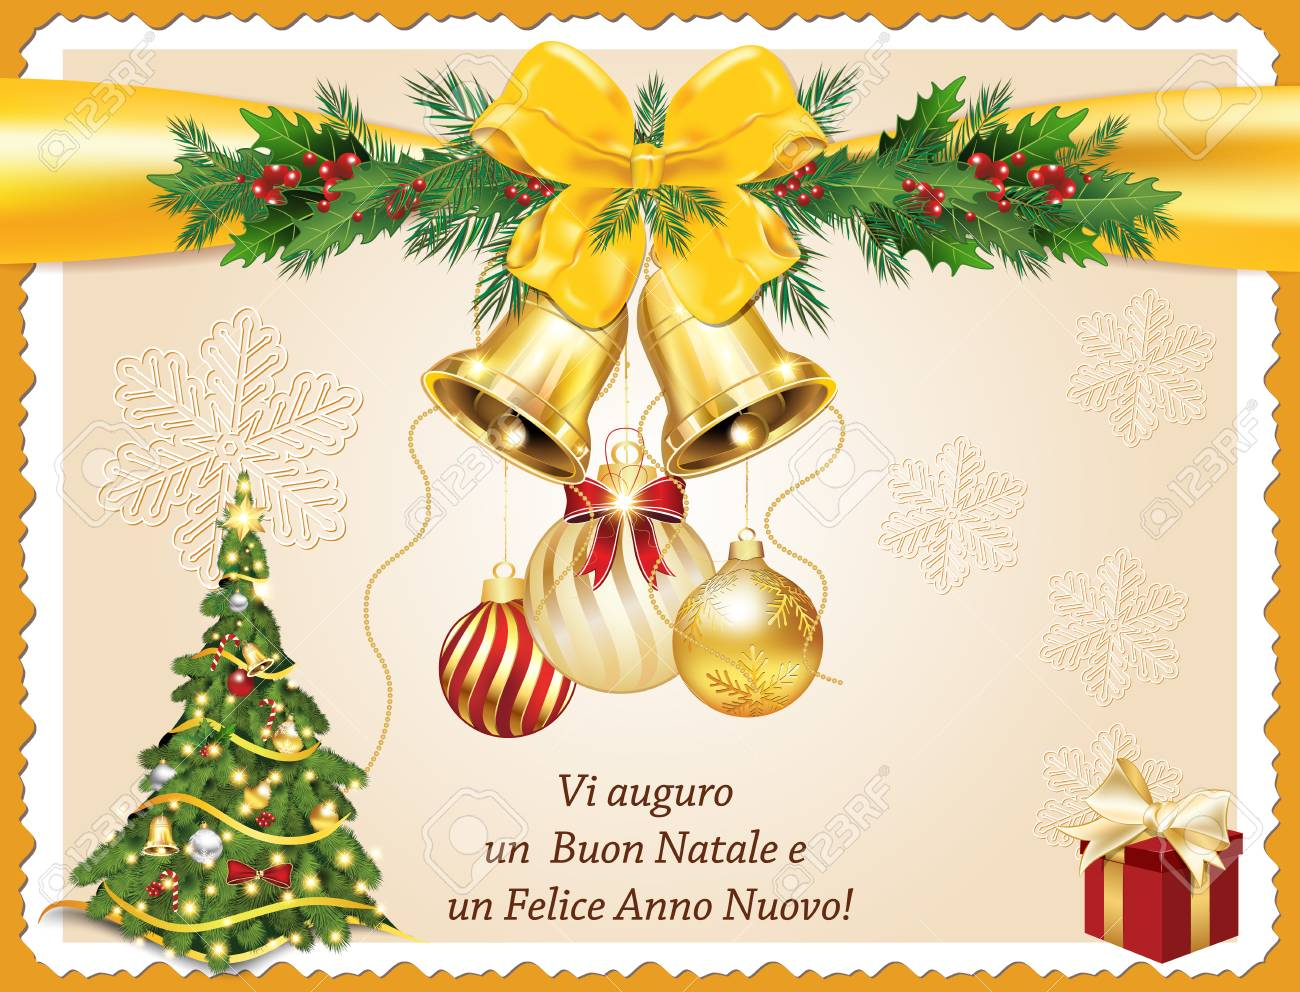 italian seasons greeting for winter holidays we wish you merry christmas and happy new year printable greeting